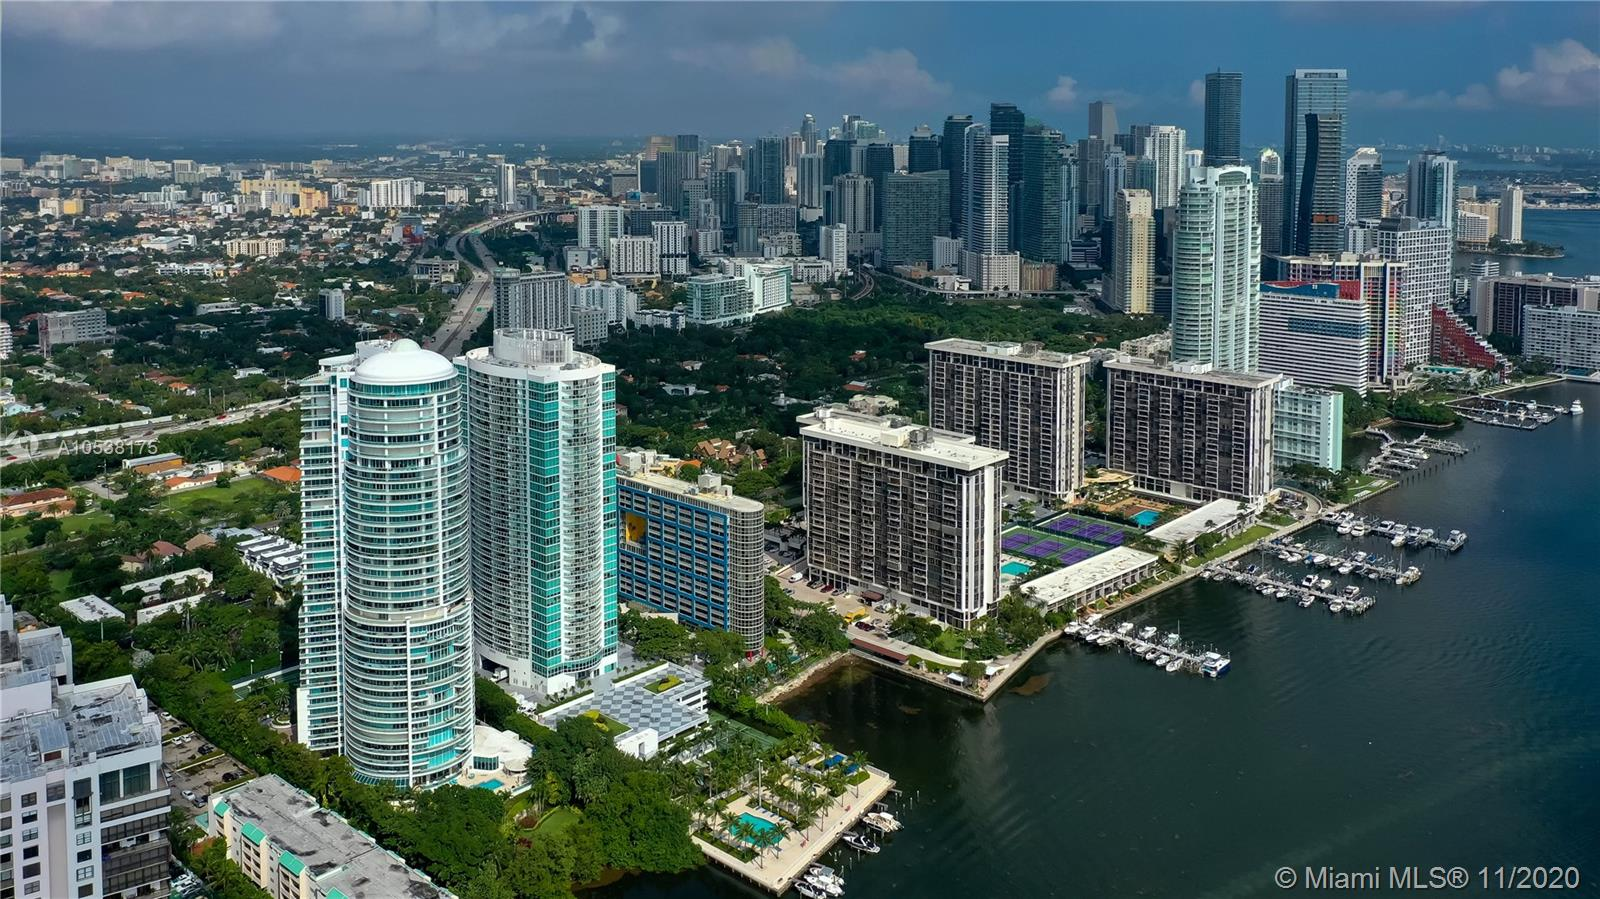 "SPECTACULAR CONDO WITH 180 DEGREES VIEWS TO BISCAYNE BAY, OCEAN AND CORAL GABLES WITH 3 BEDROOMS , 1  OFFICE PLUS DEN  AND 3 FULL BATHROOMS. CONDO COMPLETLY REMODELED BY ARCHITECT FIRM BA DESIGN.  MARBLE FLOORS IN LIVING AREAS AND WOOD FLOORS IN BEDROOMS.    WRAP AROUND BALCONY WITH ACCESS FROM EVERY ROOM AND MAGNIFICENT VIEWS.  COMES WITH  3 PARKING SPACES ""THIS IS A PLUS"".